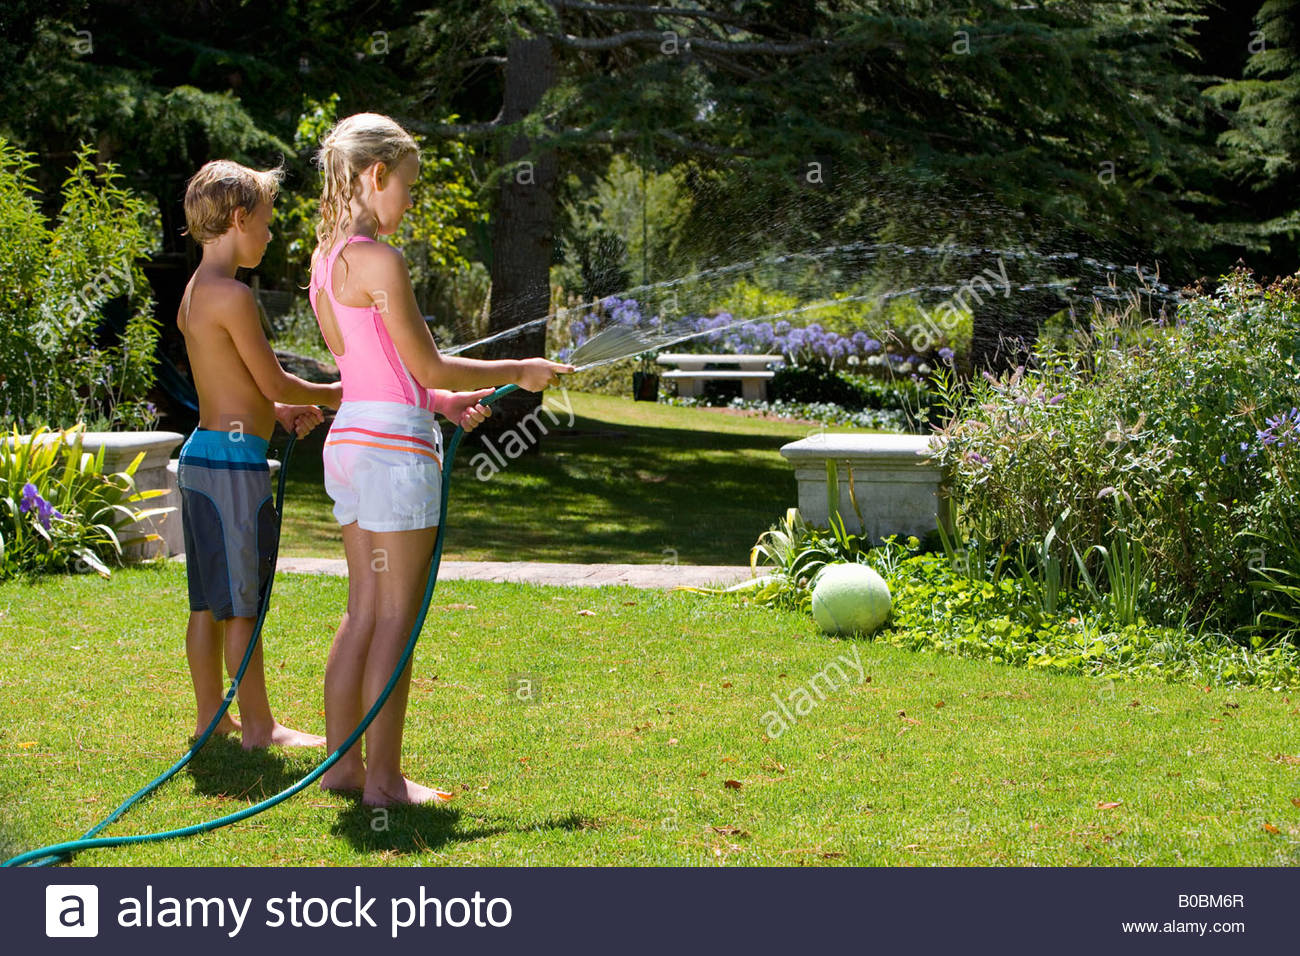 Brother and sister 8-12 watering garden with hoses, side view - Stock Image